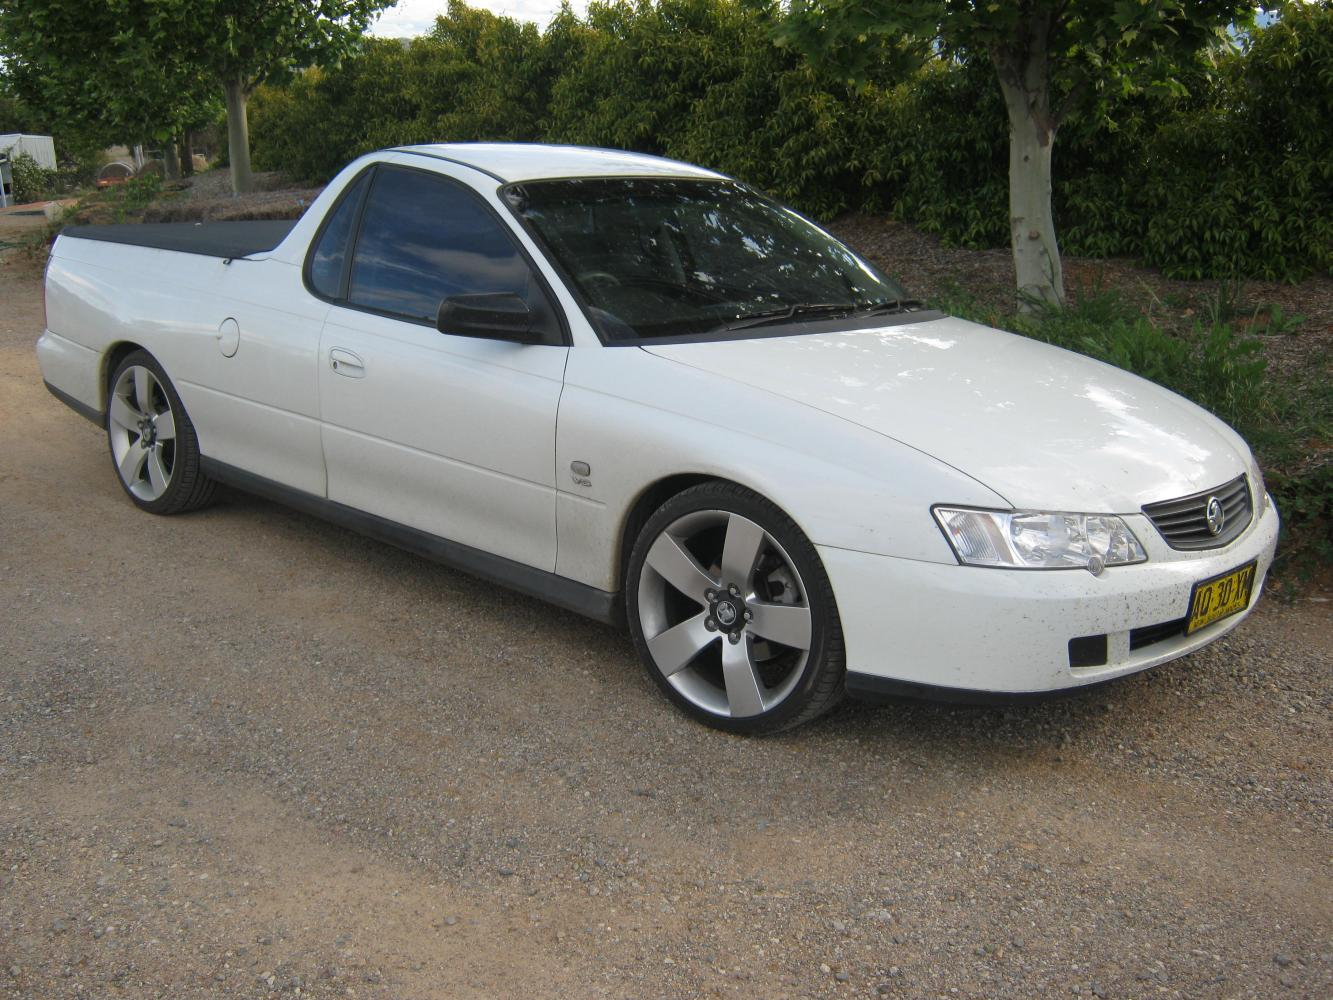 2006 holden vz ute ss choice image hd cars wallpaper 2004 holden vz ute ss image collections hd cars wallpaper 2004 holden vz ute gallery hd vanachro Gallery